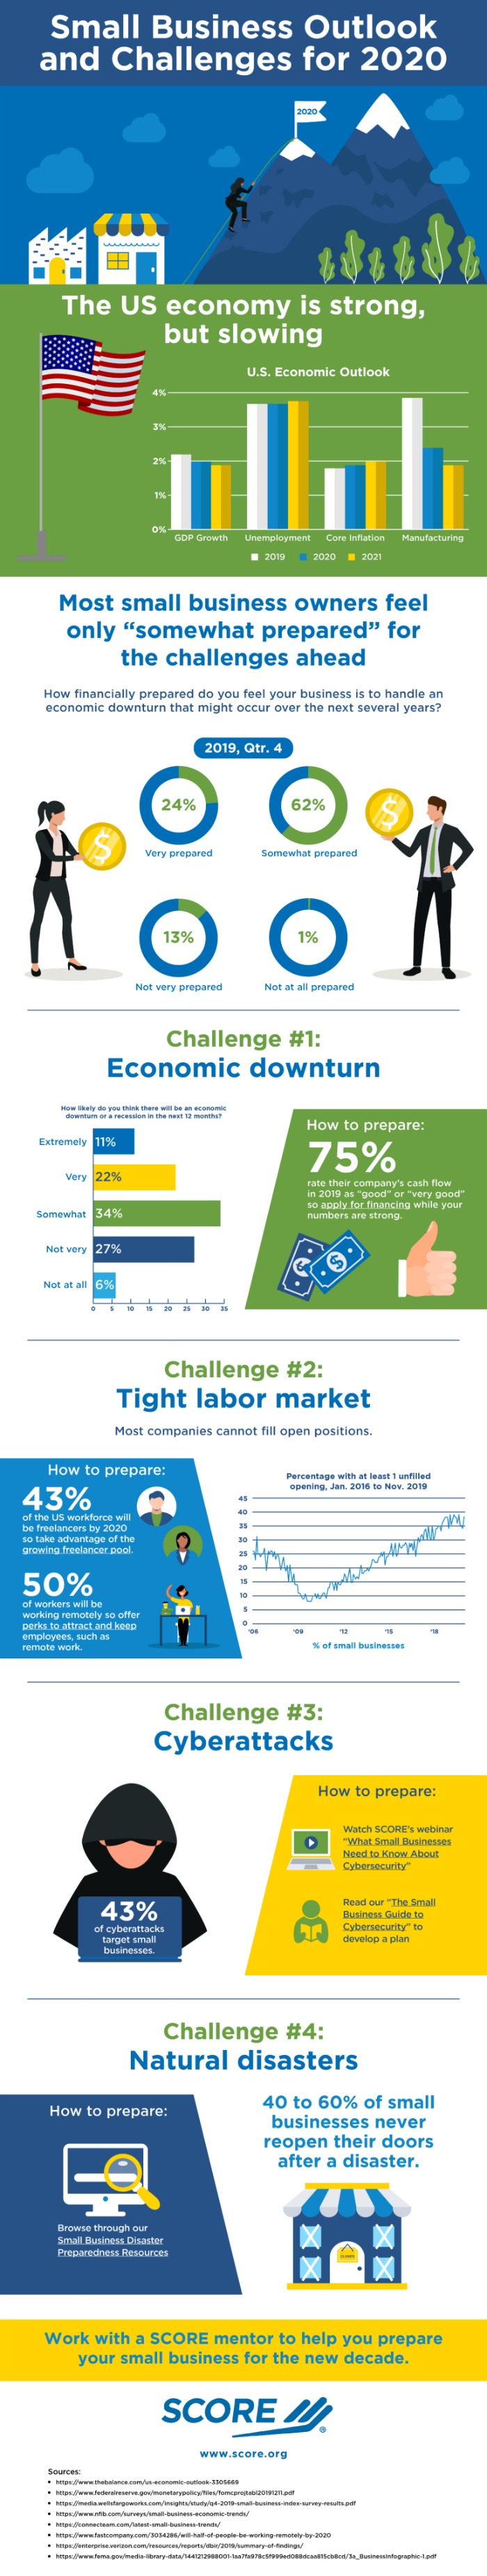 Infographic: Small Business Outlook and Challenges for 2020